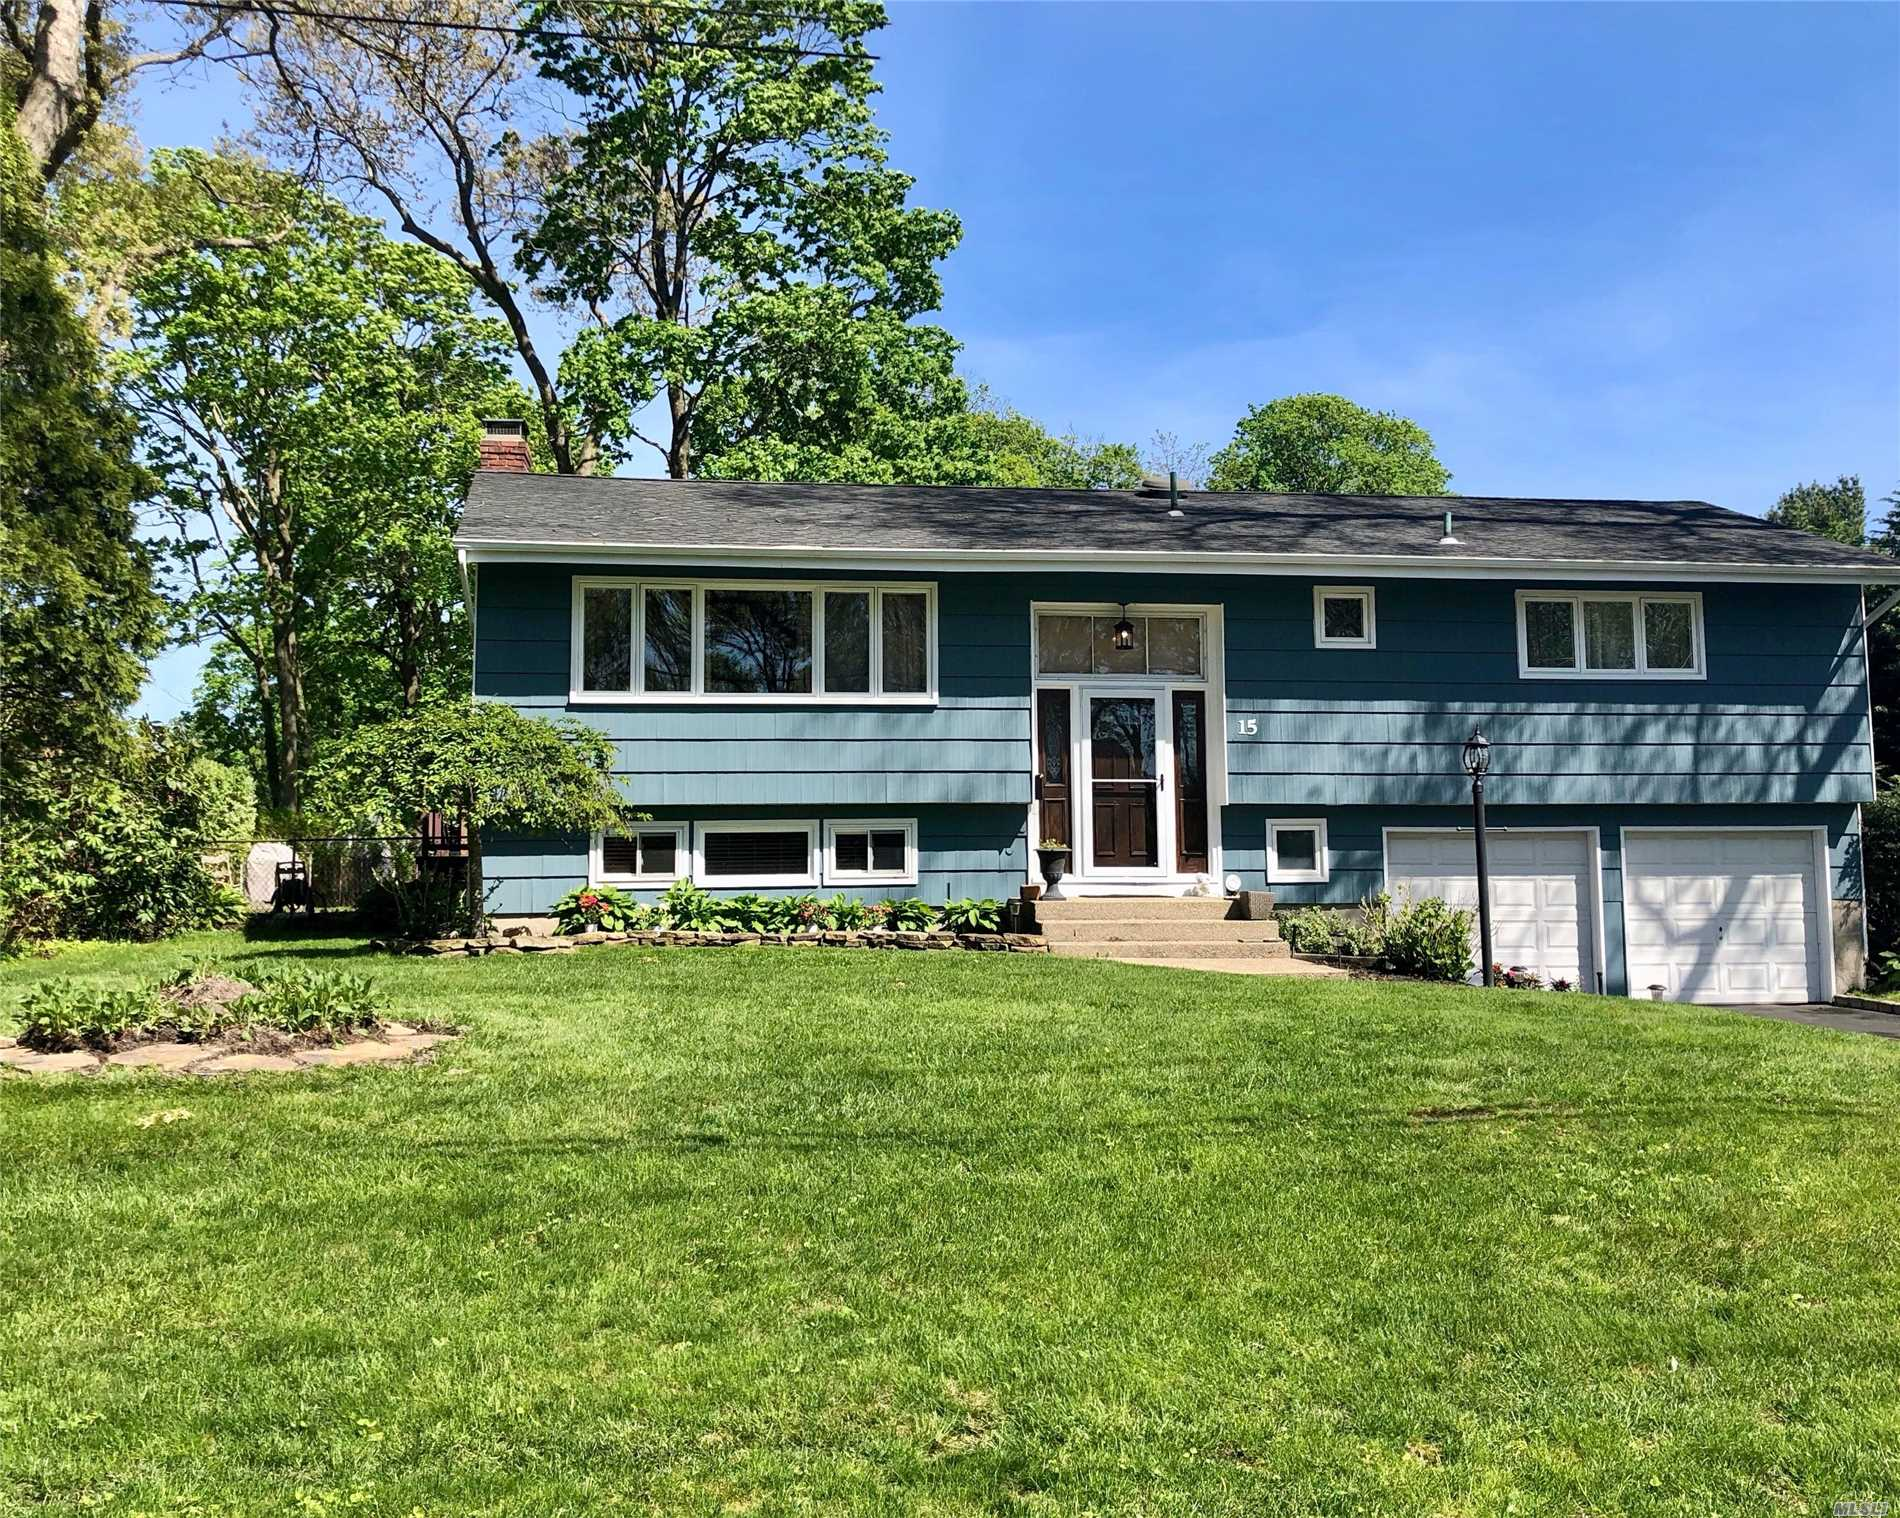 5 Bedroom Oversized Hi Ranch In So Bayport. Many Updates, Cul De Sac, Spacious Rooms, Updates Thruout. Warm And Welcoming. 200 Amp Elec, Hardwood Floors, Solid Raised Panel Doors, All Updated Windows, New Flooring In Den With A Fireplace. Belgium Bloc Lined Driveway, 10 Yr Young Roof, 1 Layer. Great Entertainering Home And Yard, Bi Level Deck With Block Patio. Deep And Private Yard. Make It Yours. Close To Sayville Downtown And Meadowcroft.